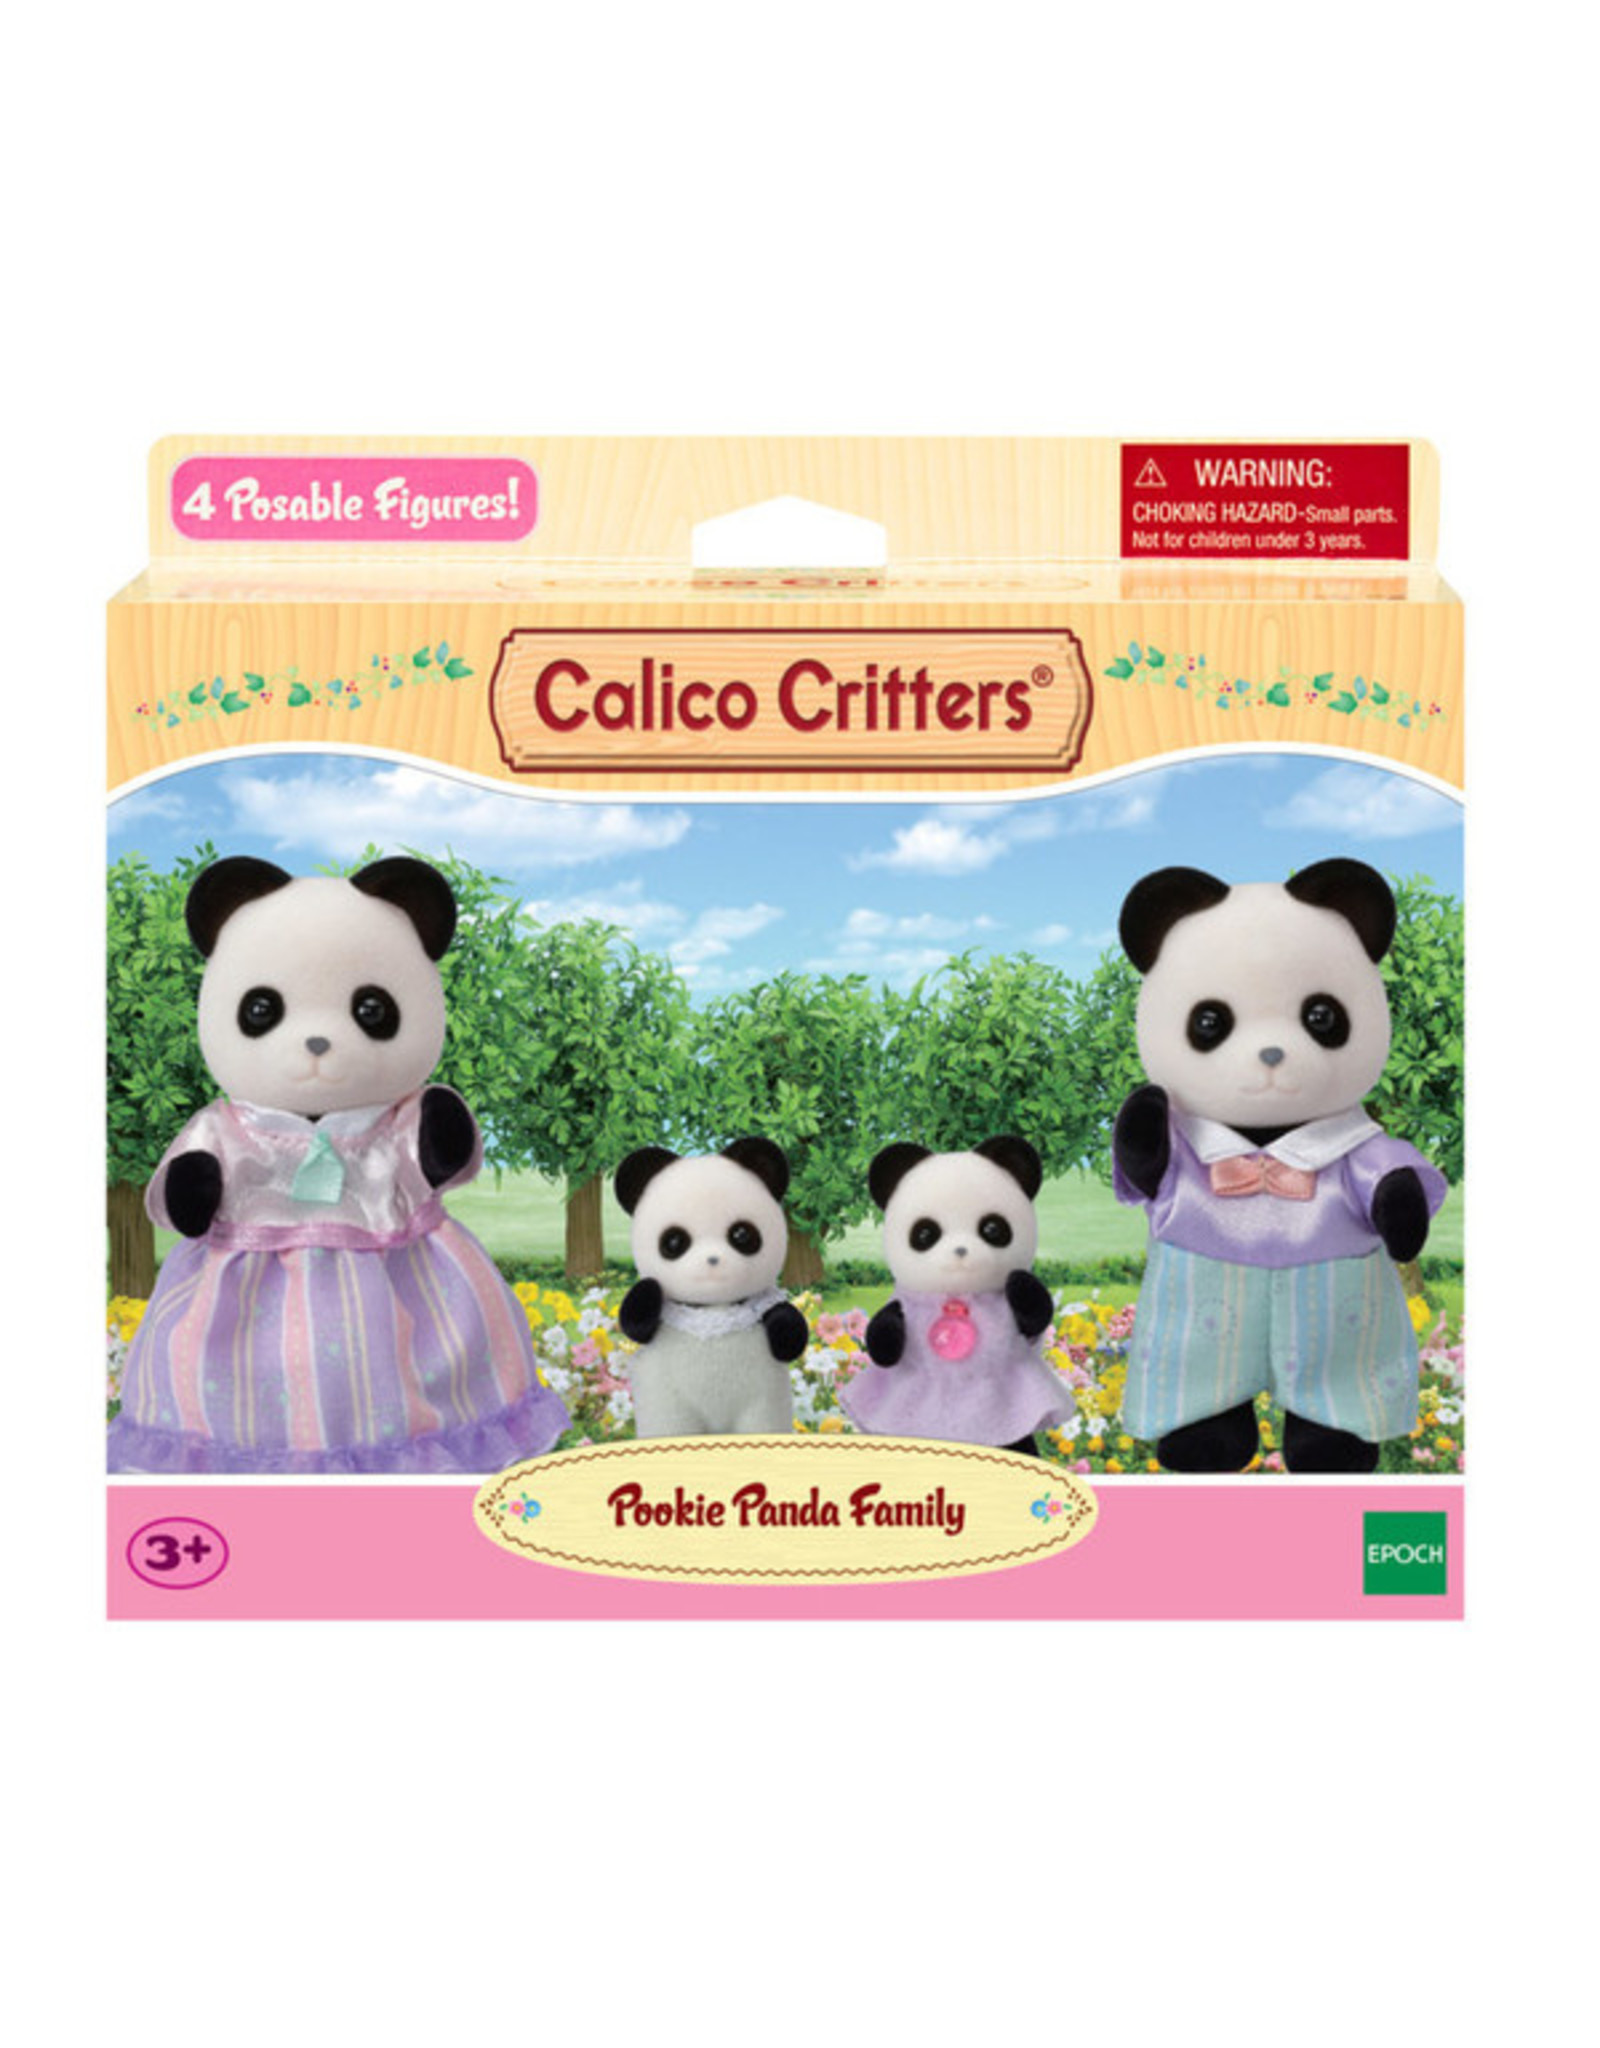 Calico Critters Calico Critters Pookie Panda Family